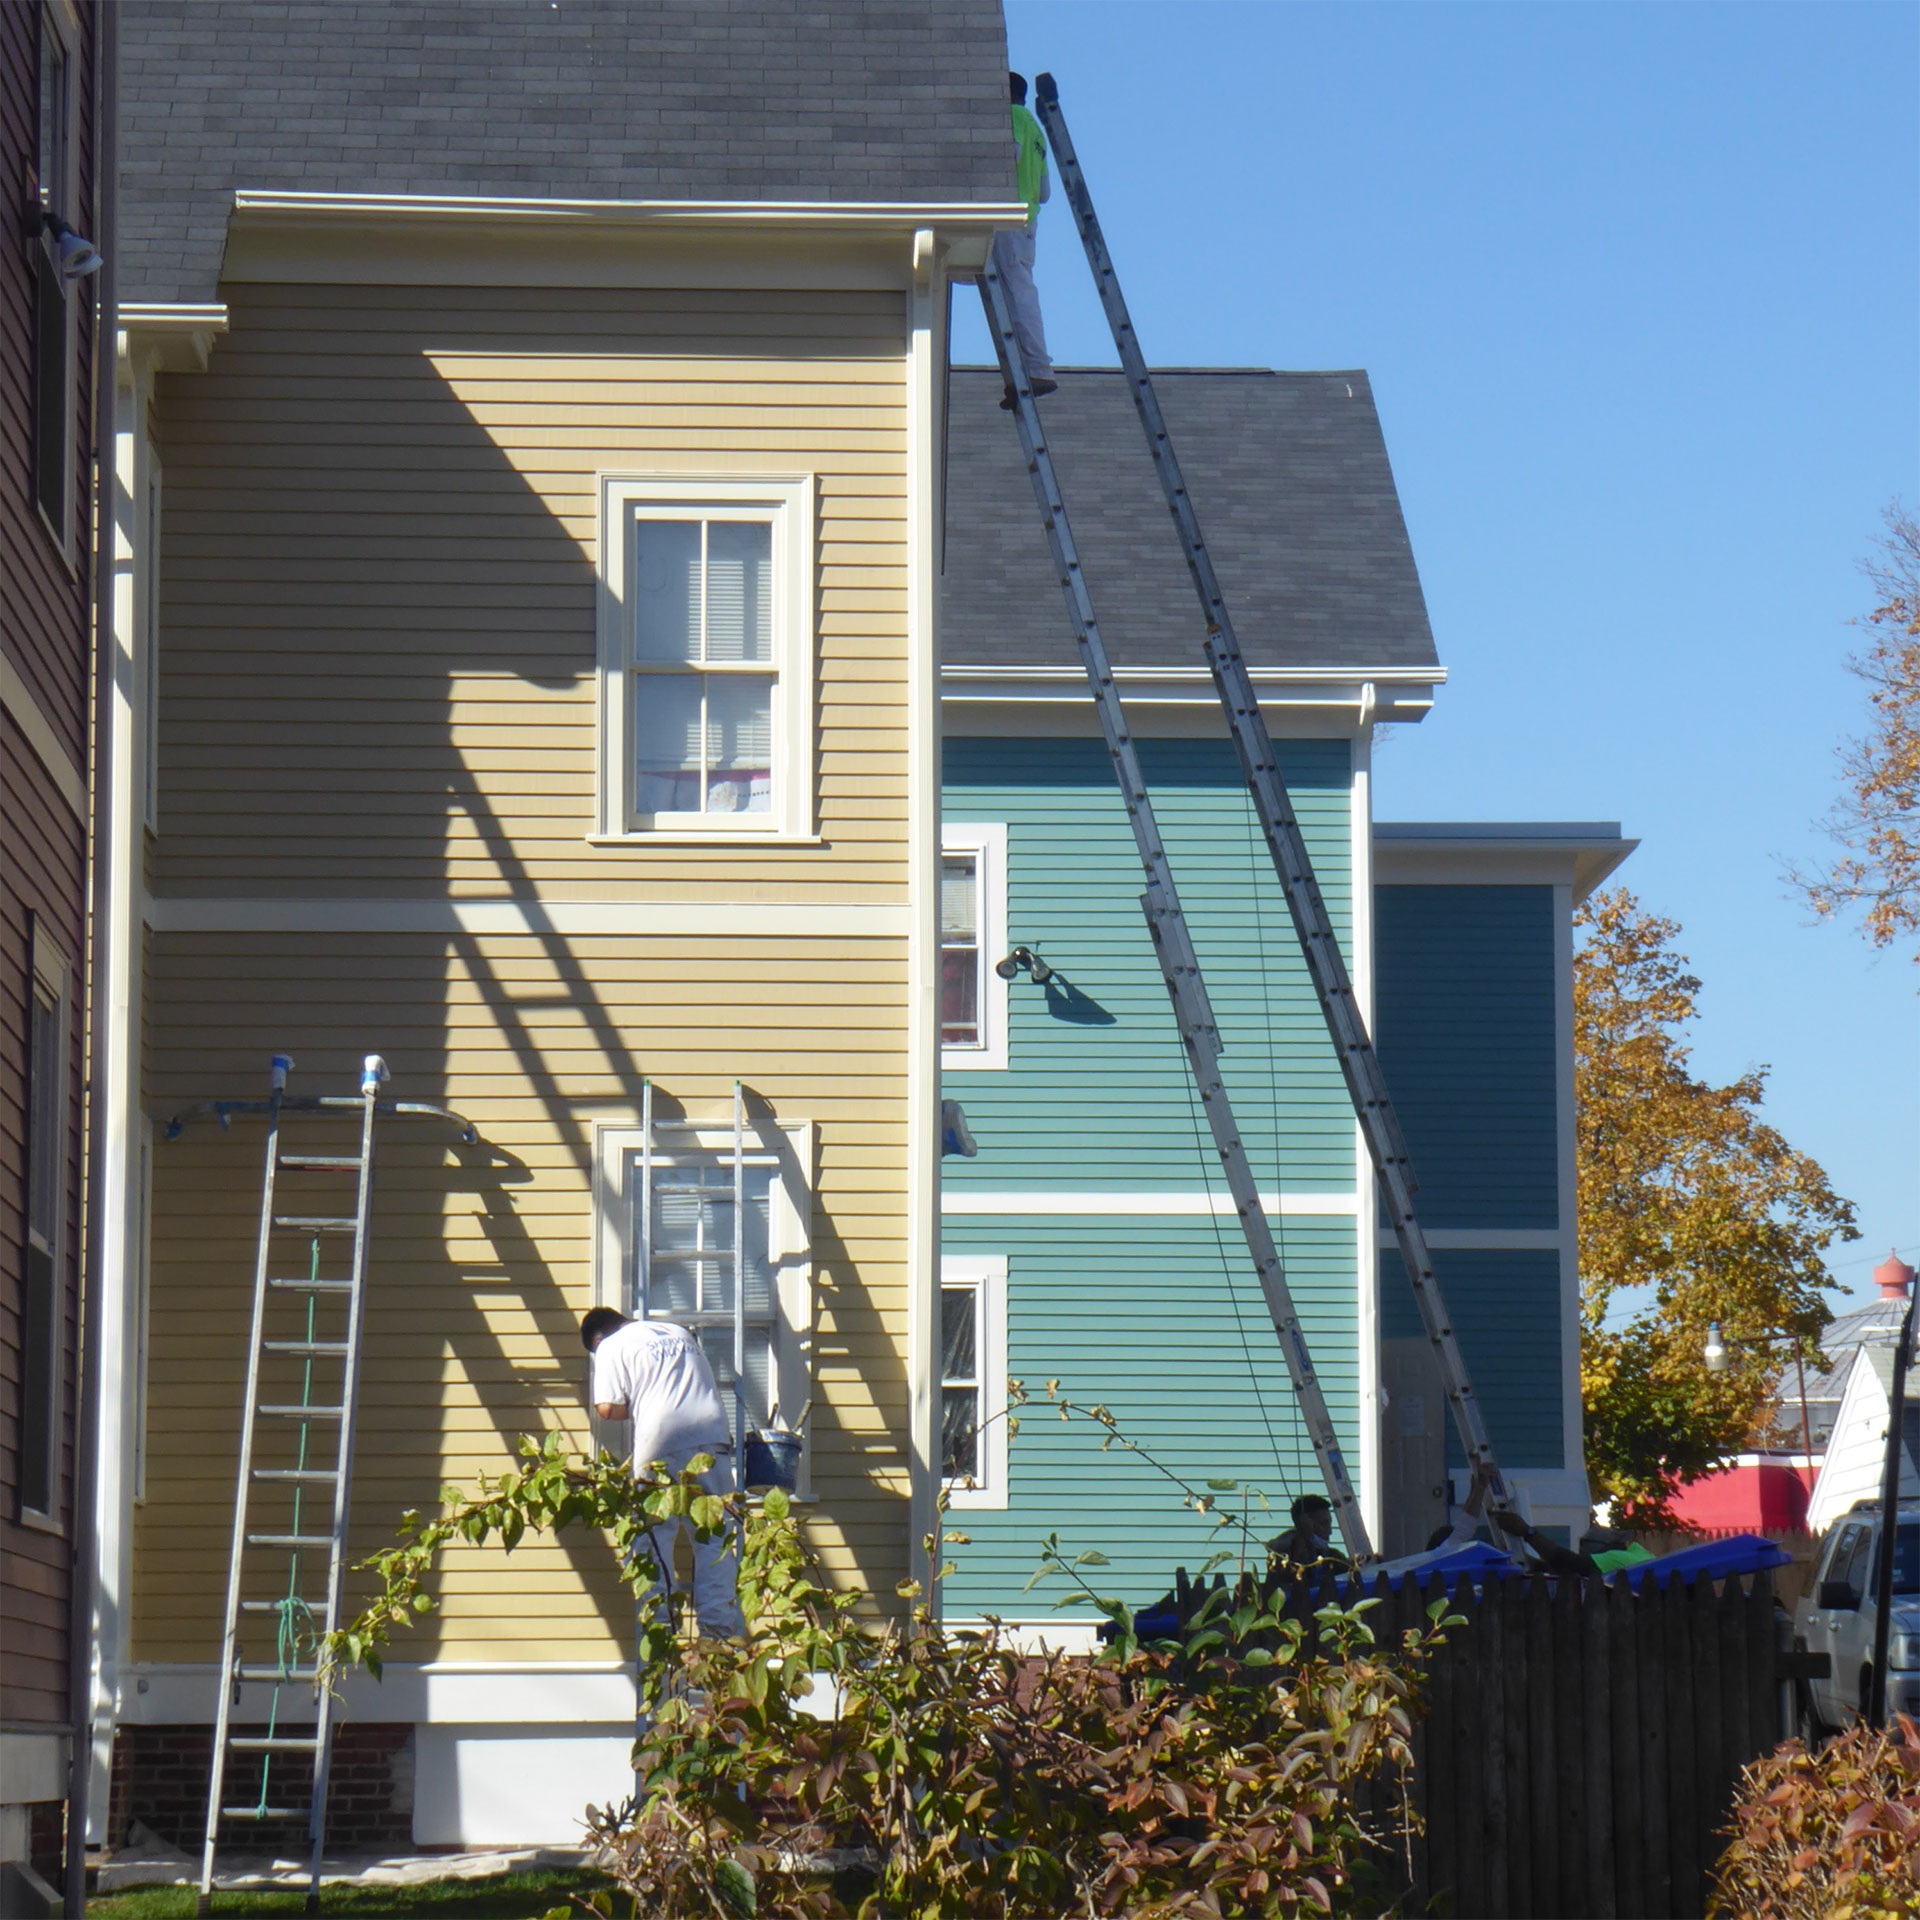 Historic houses being painted as part of the ongoing maintenance program of SWAP.